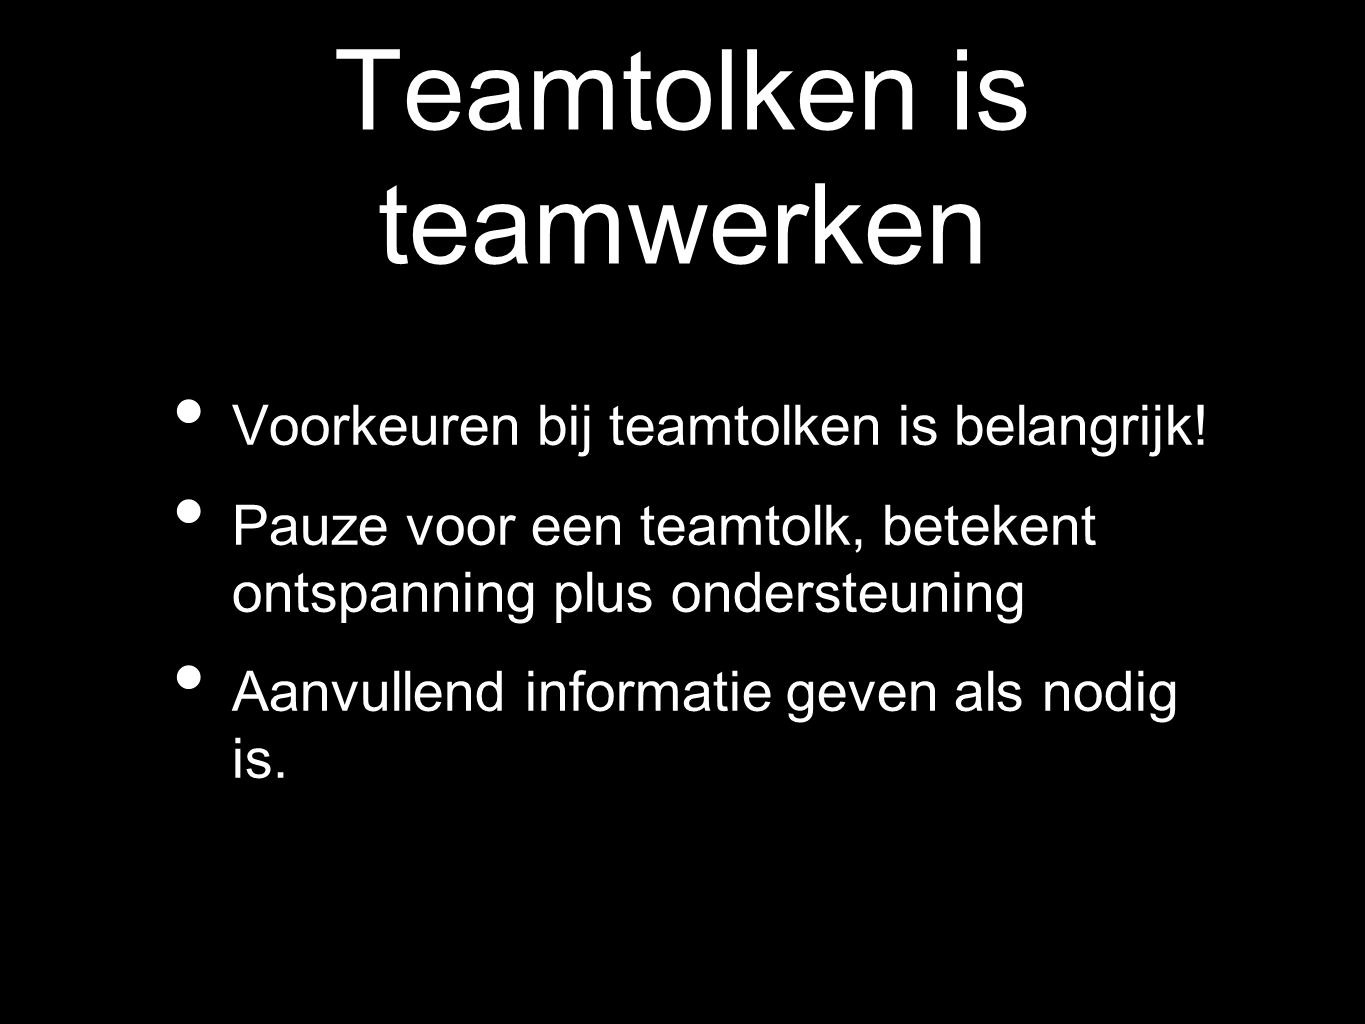 Teamtolken is teamwerken